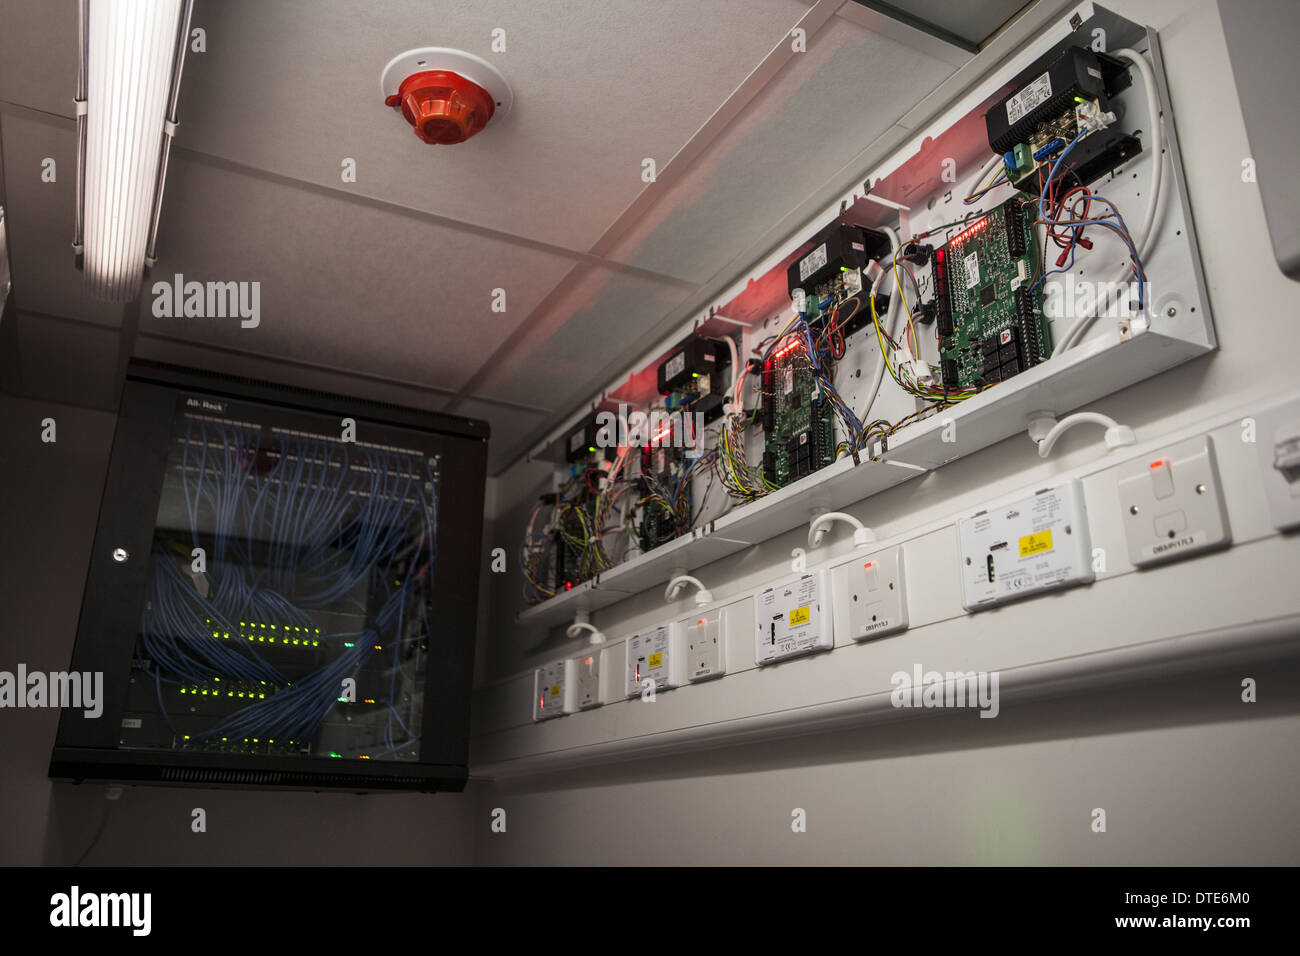 Door access control panels sighted in server room interfaced into stock photo royalty free - Internet multi server control panel ...